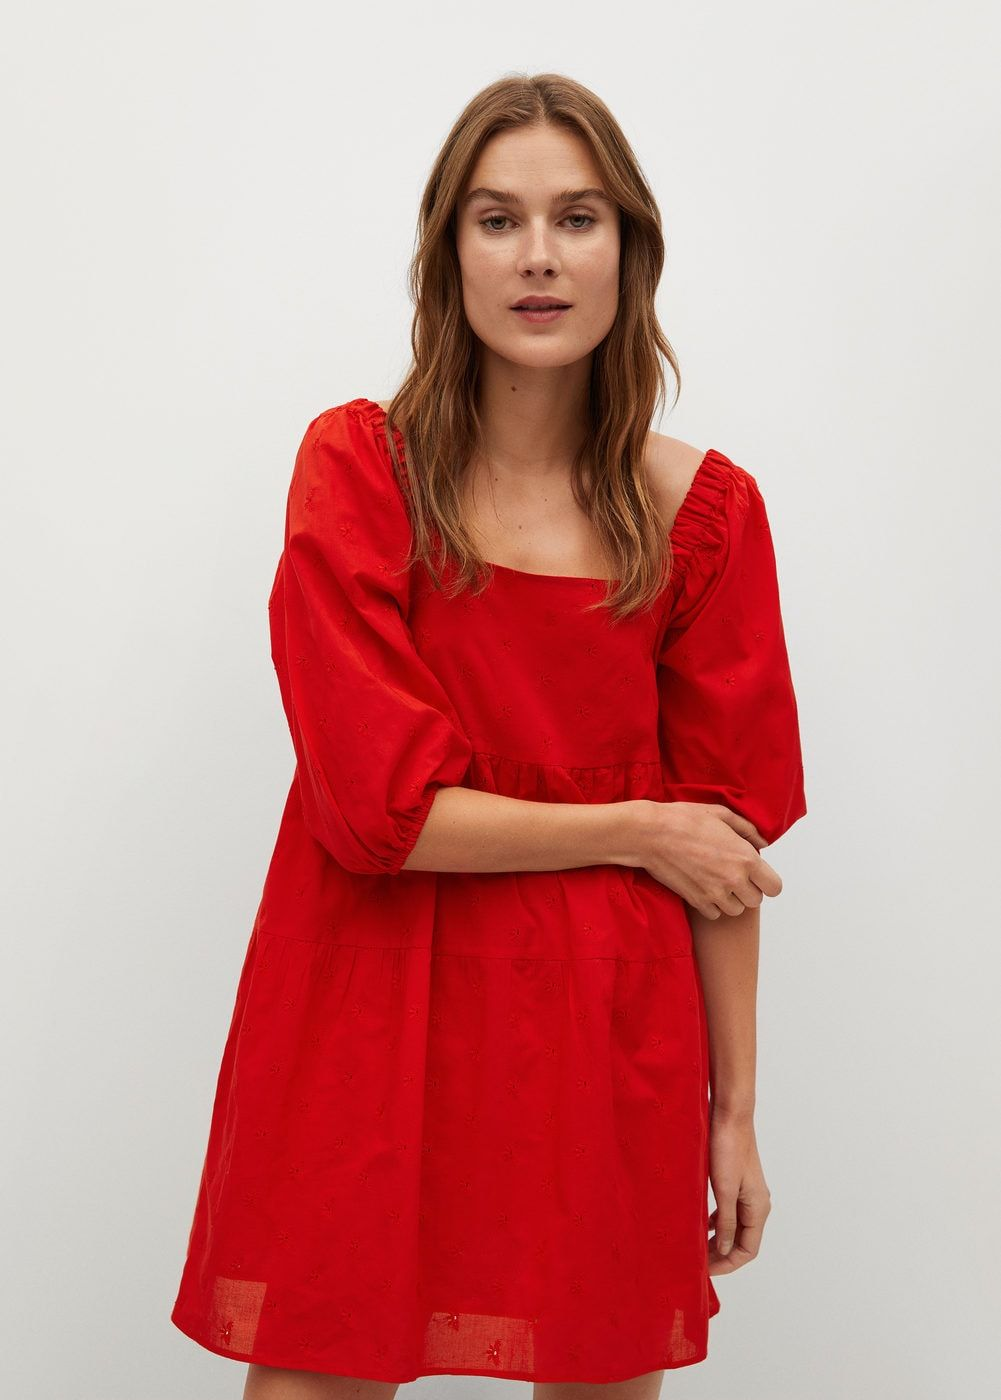 28 Casual Red Dresses Under $100 That I'm Obsessed With - casual red dresses 293971 1624940516094